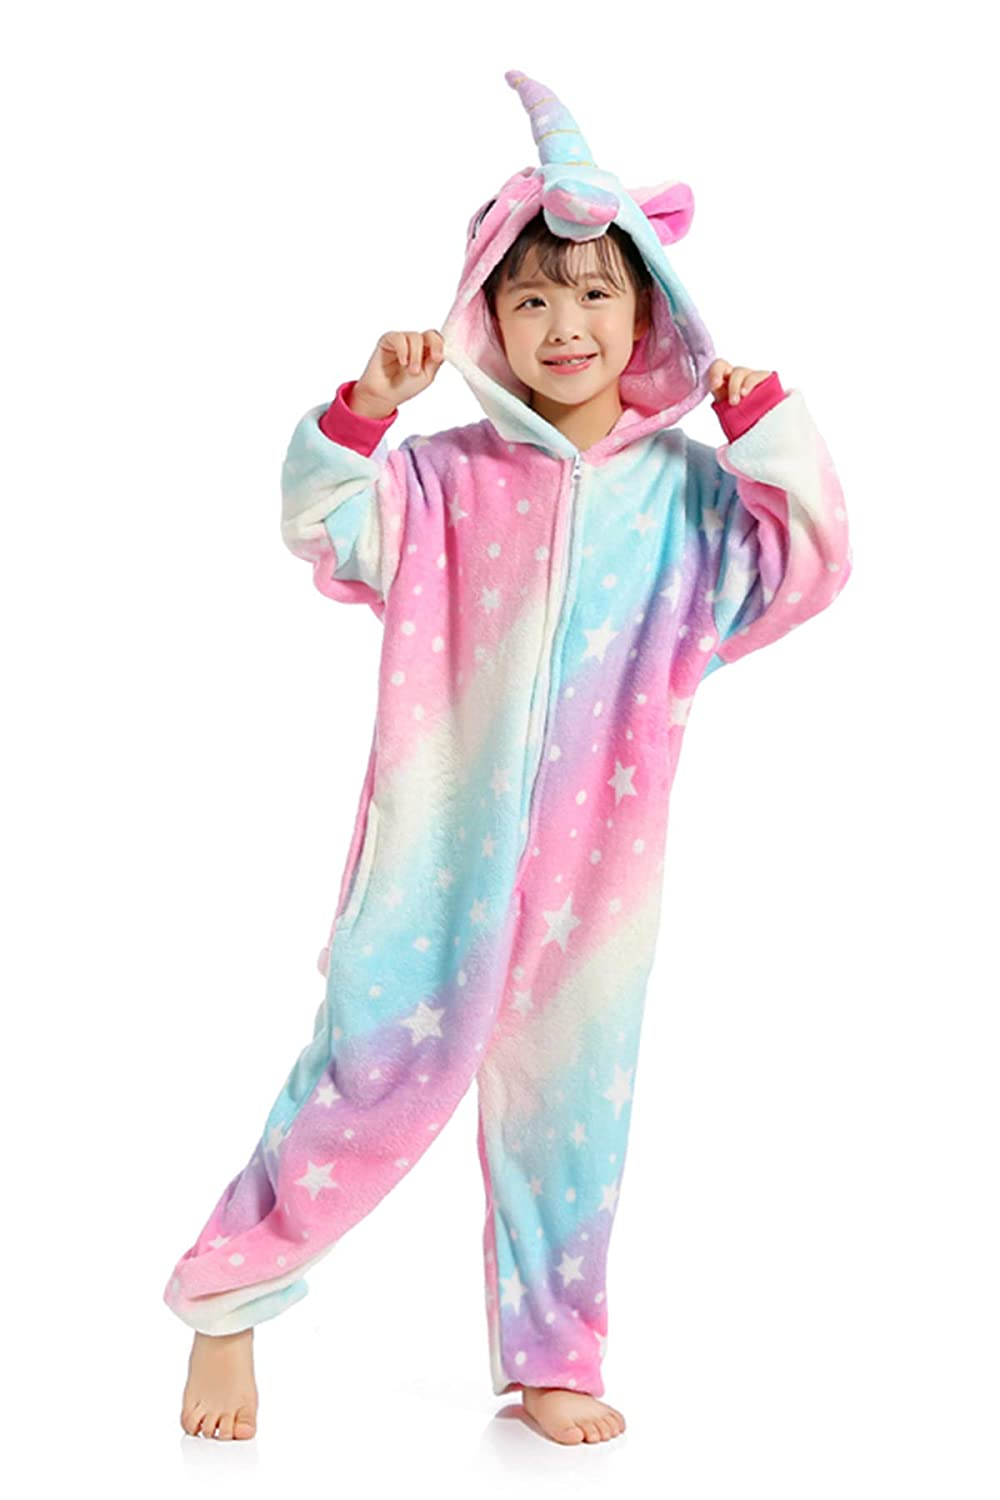 5207086dee95 Amazon.com: Kids Unicorn Onesie Pajamas Costume for Halloween Cosplay:  Clothing